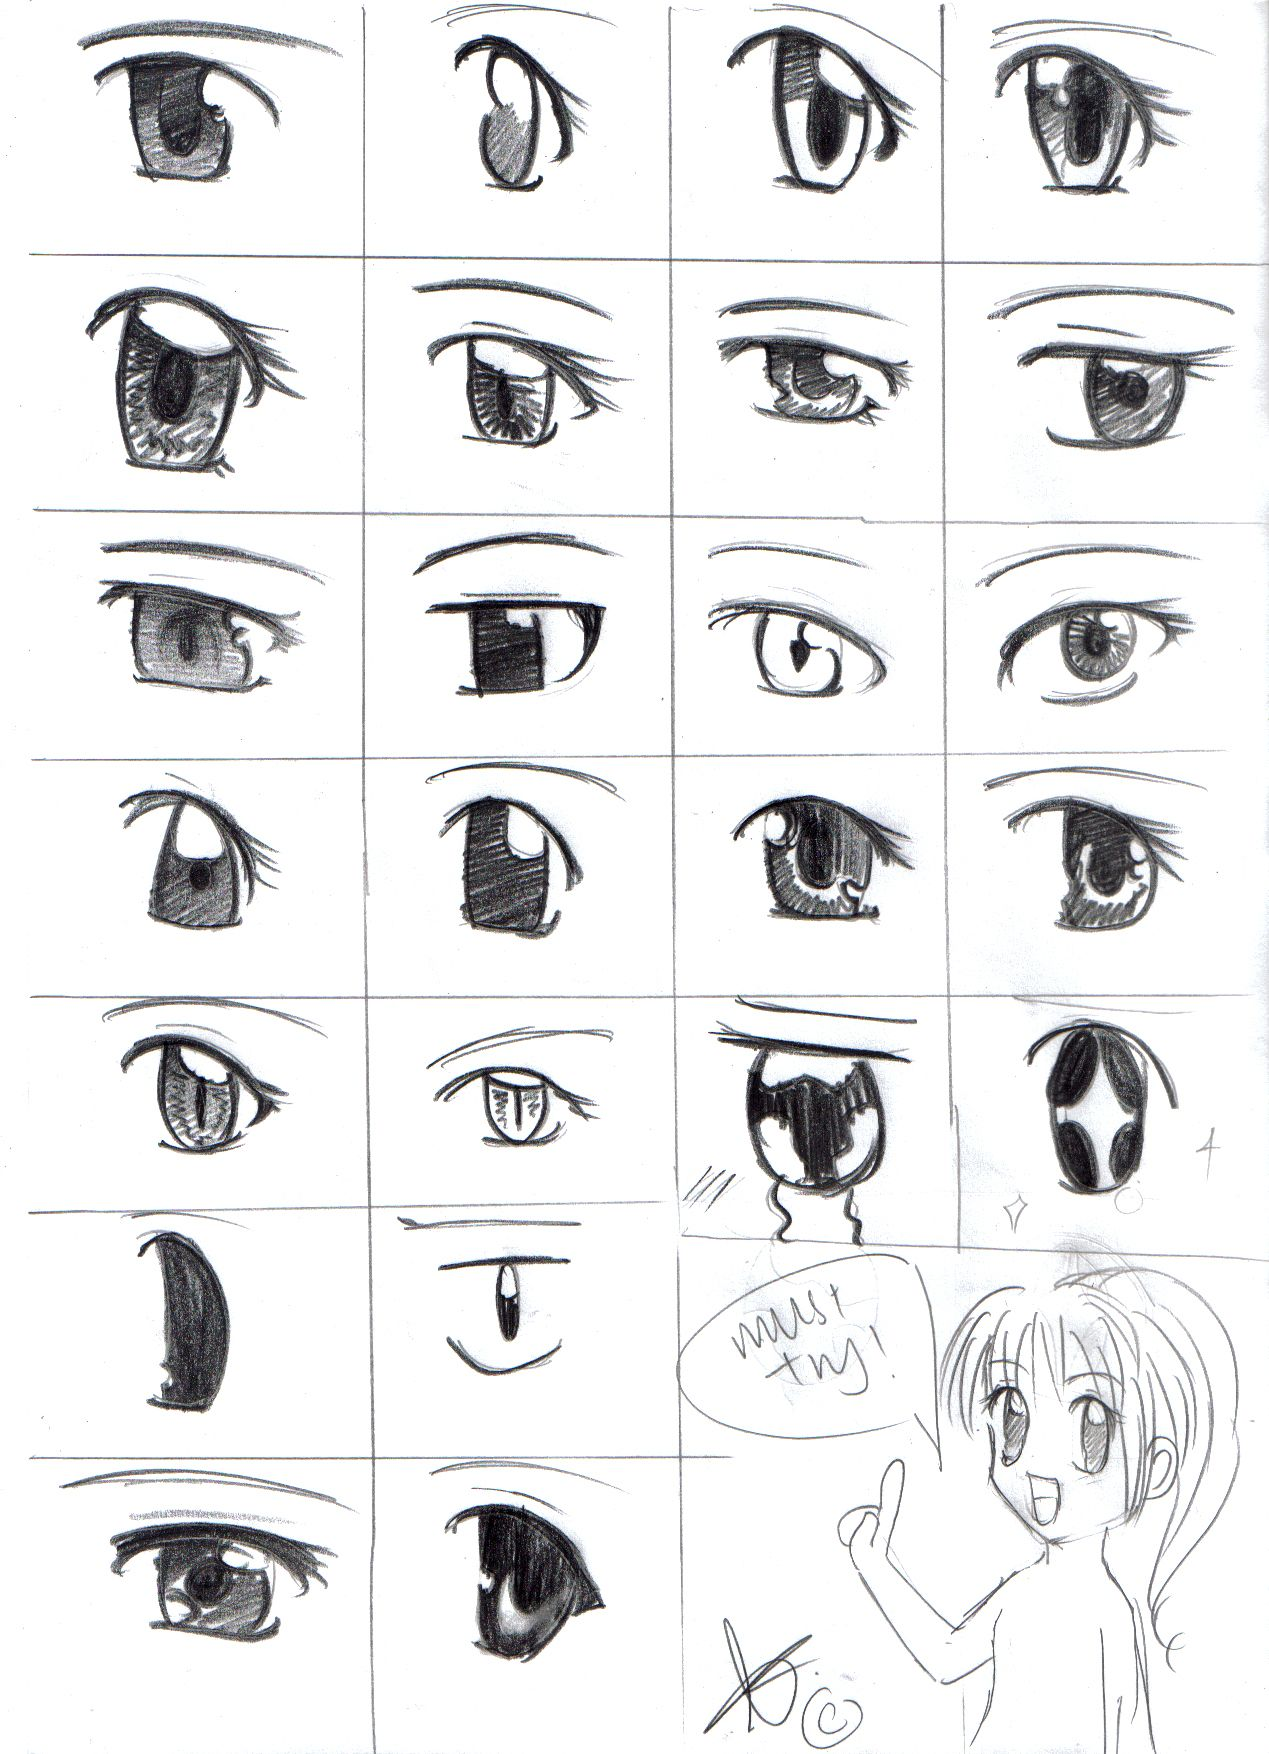 How To Draw Anime  How To Draw Shojo Eyes By Silvercorals Manga Anime  Traditional Media